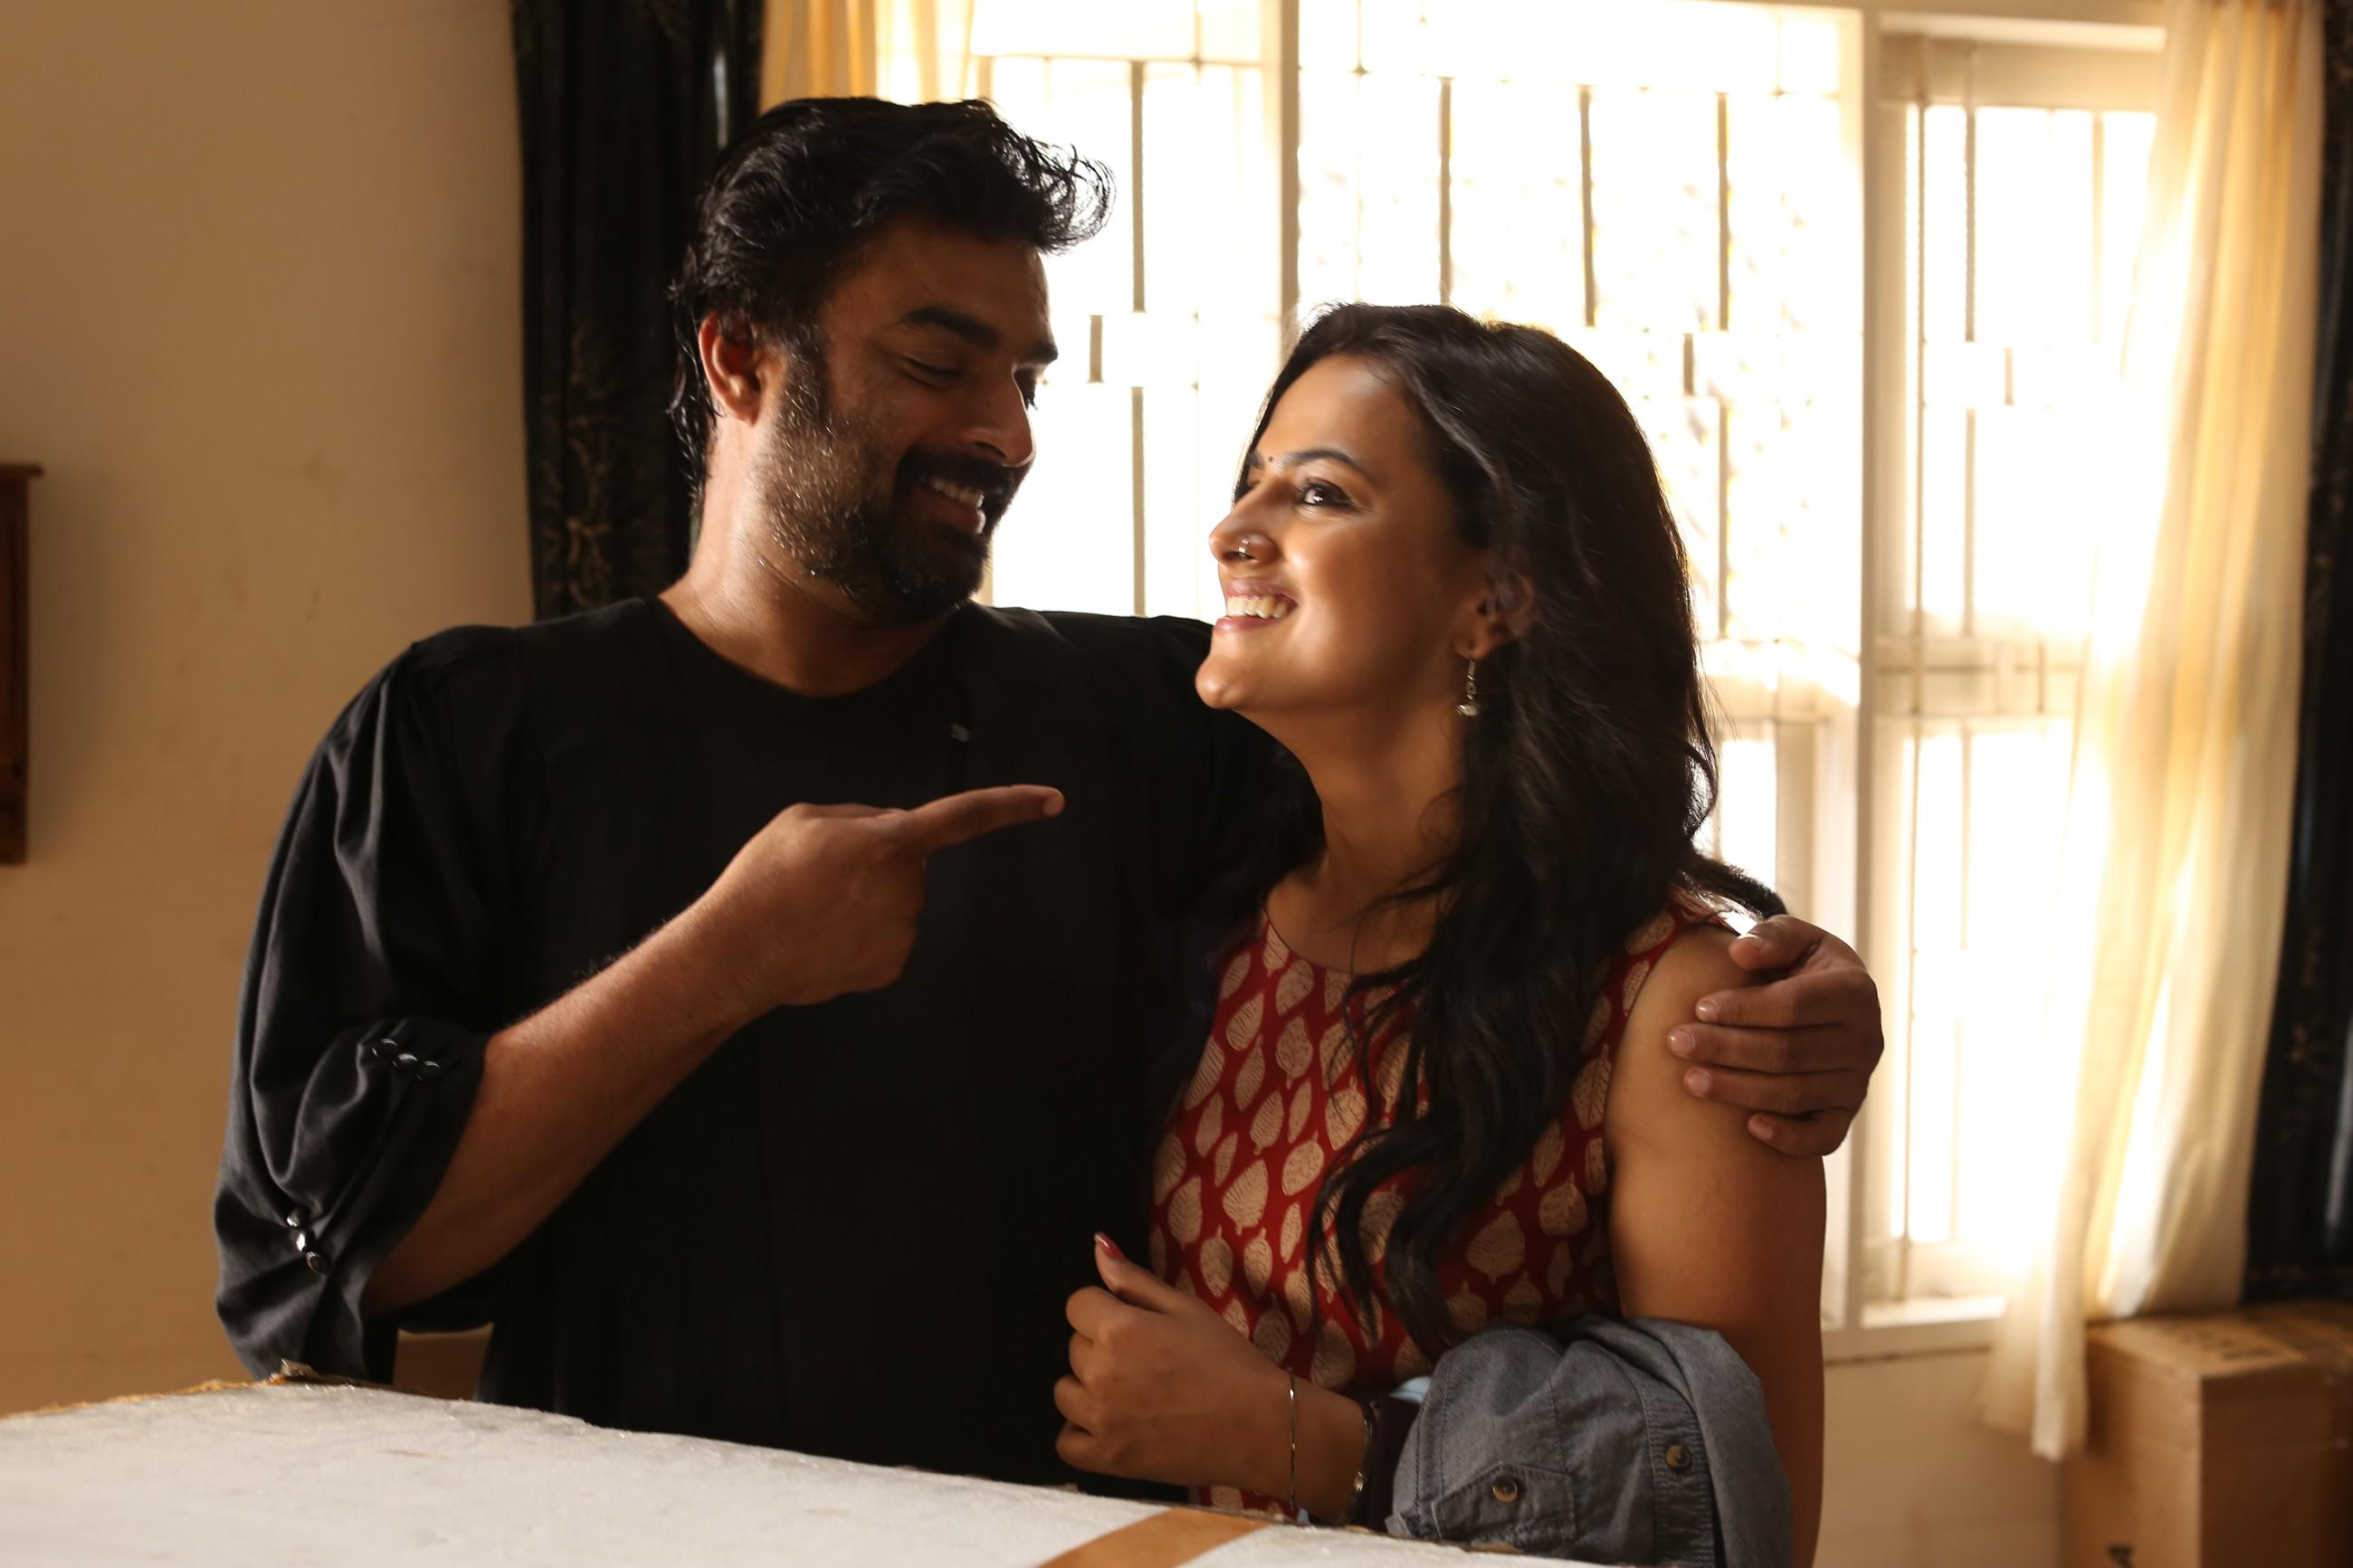 madhavan shraddha srinath maara movie details